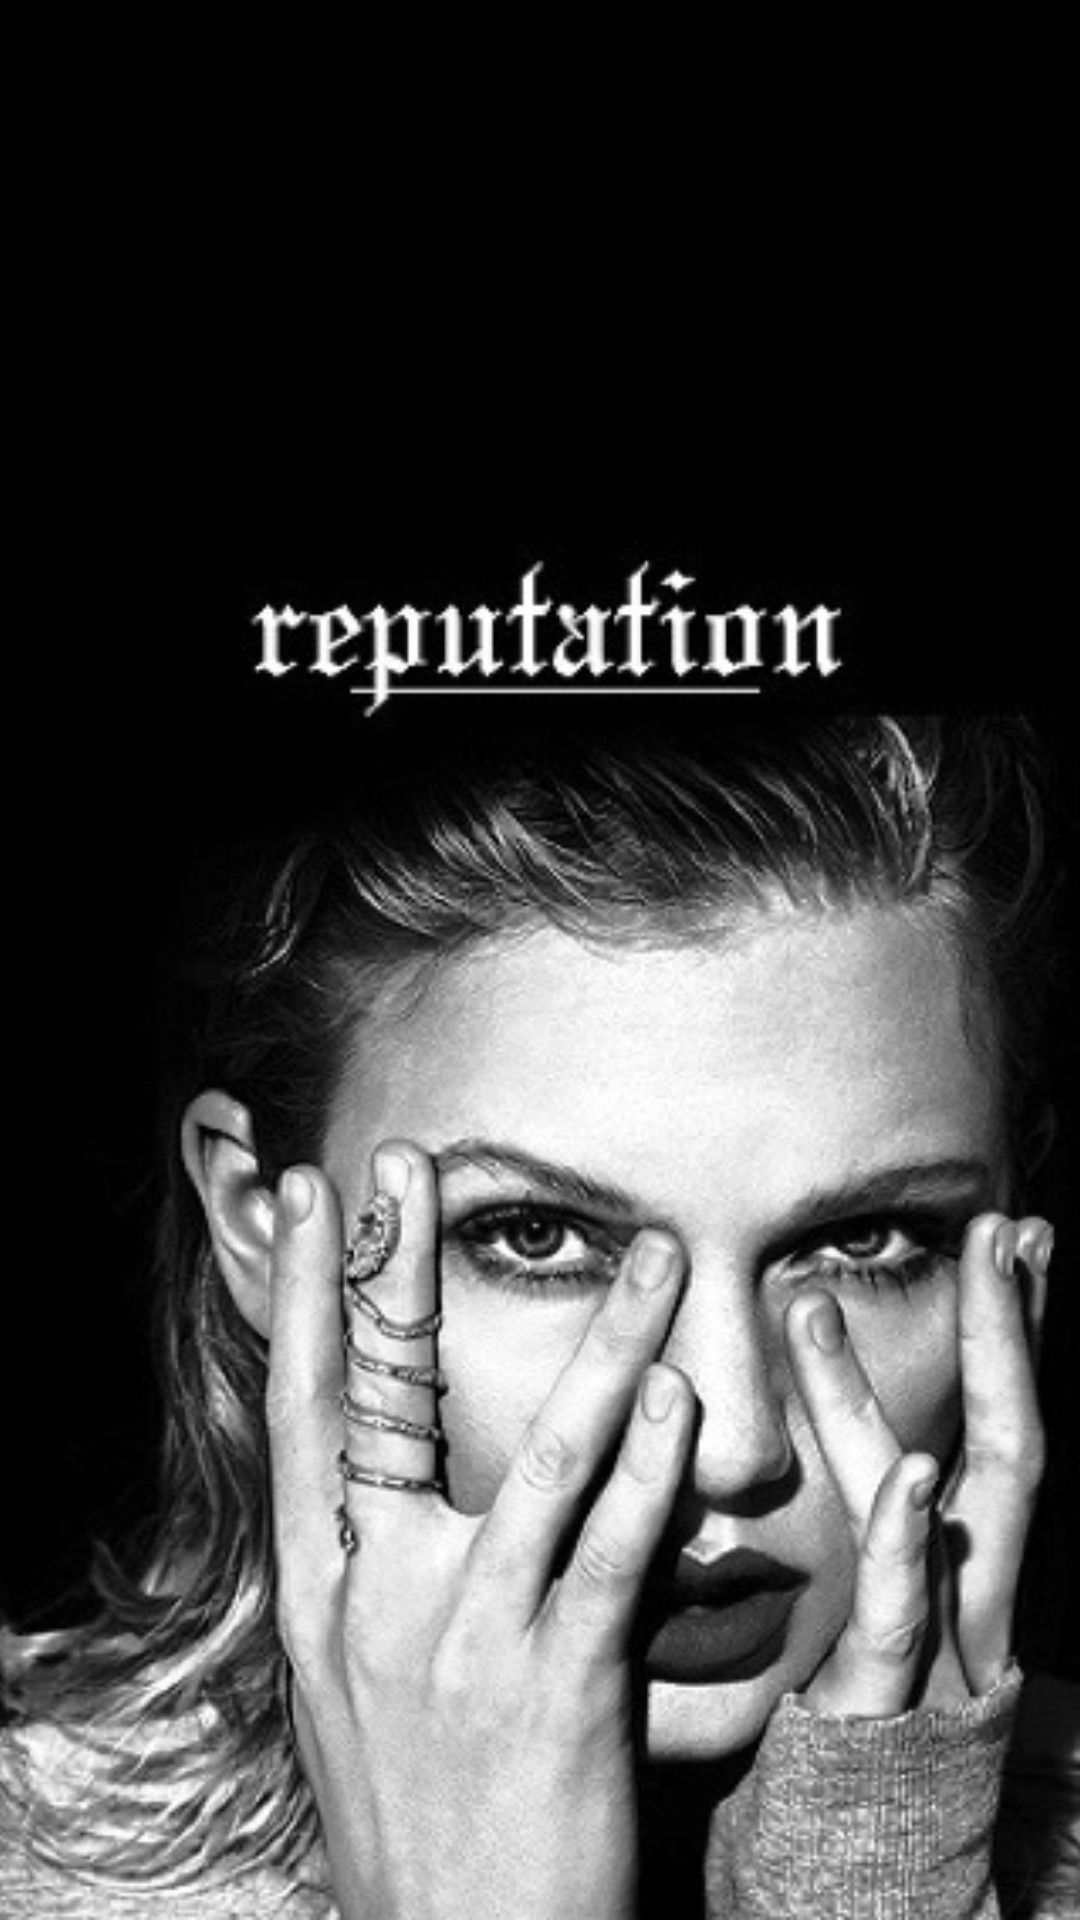 free download zeena that snake ring is sweet as hell where do i buy one 1080x1920 for your desktop mobile tablet explore 25 taylor swift reputation netflix wallpapers taylor taylor swift reputation netflix